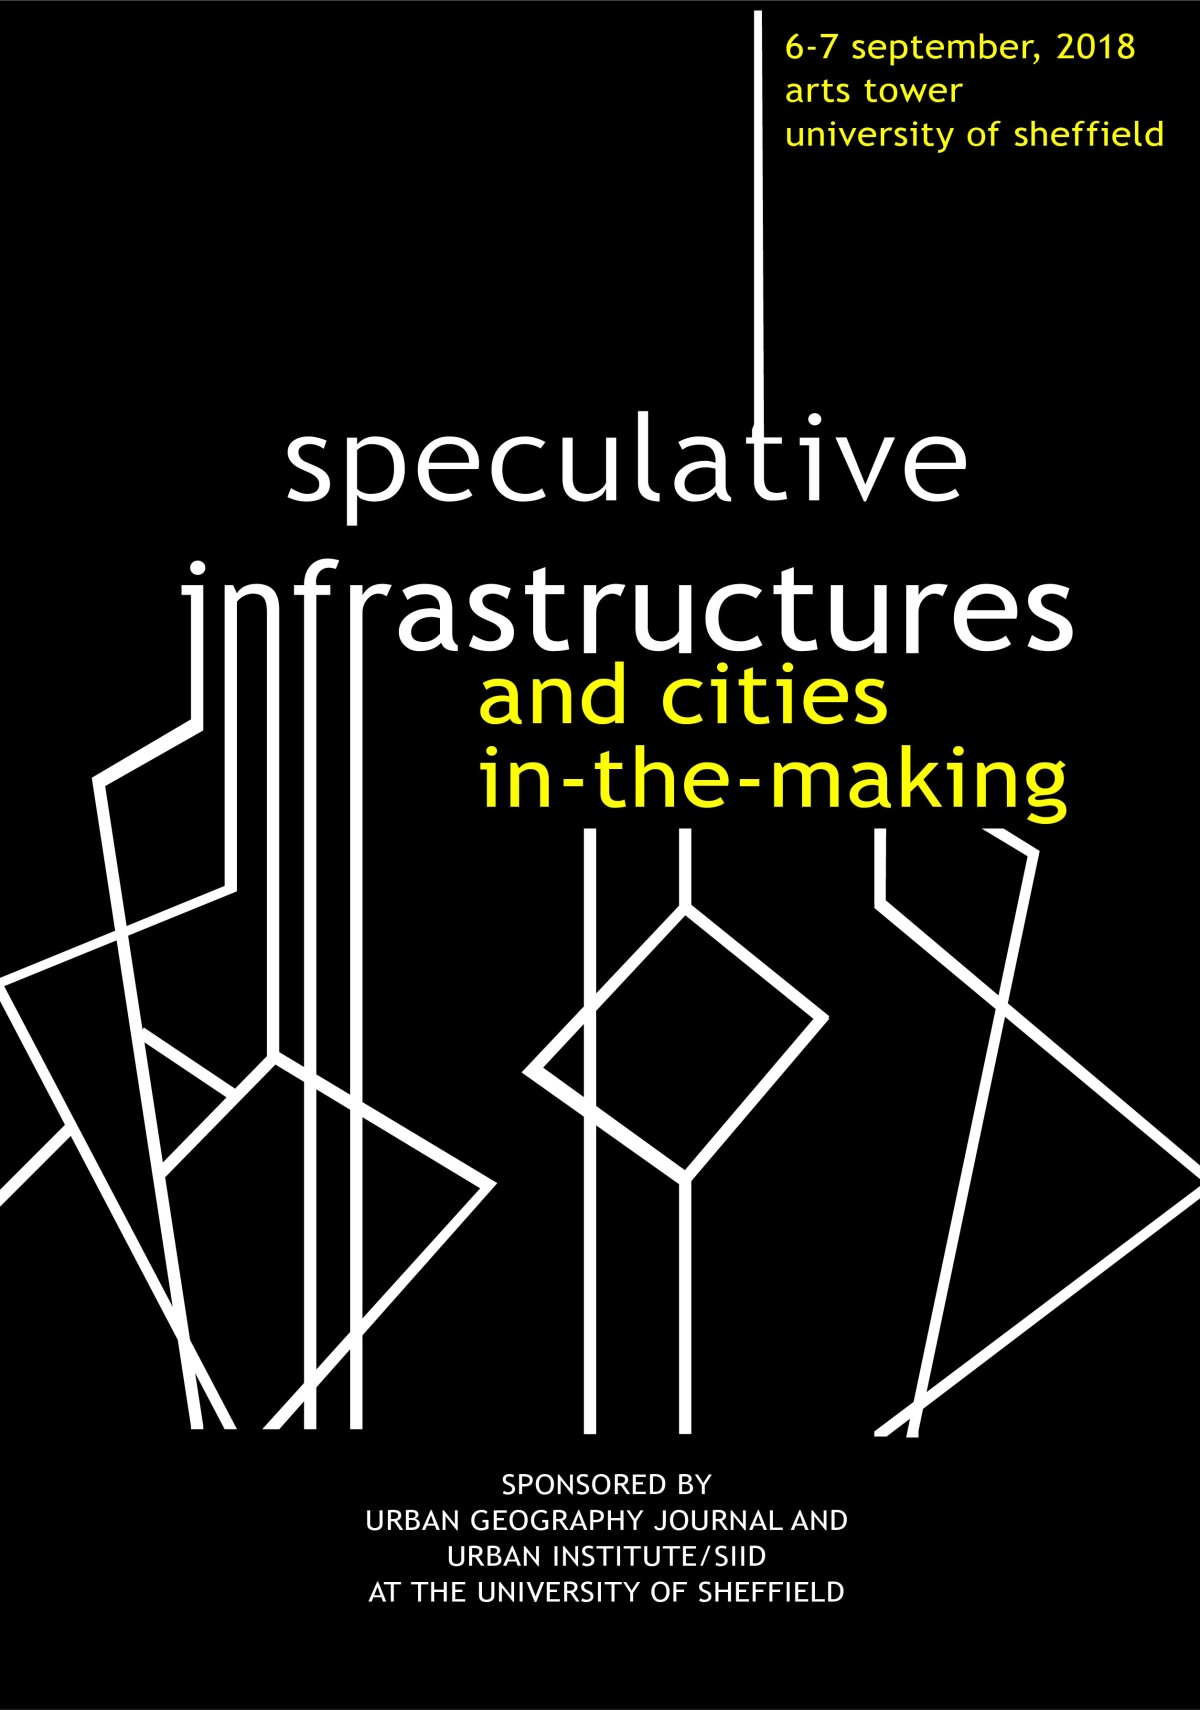 Speculative Infrastructures Workshop